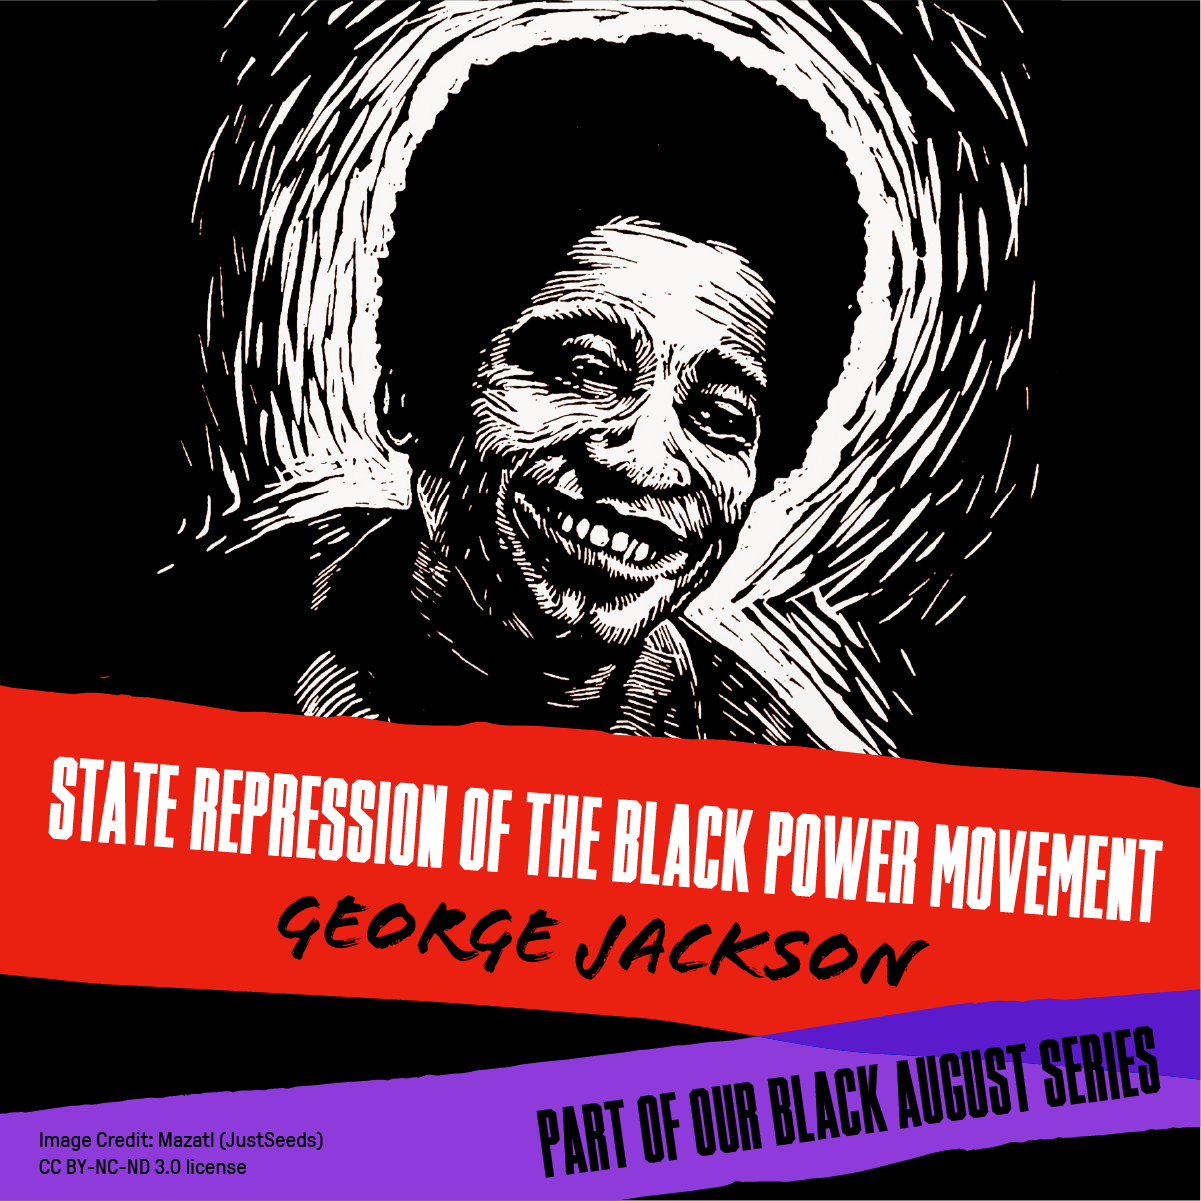 Illustration of George Jackson with the title State Repression of the Black Power Movement